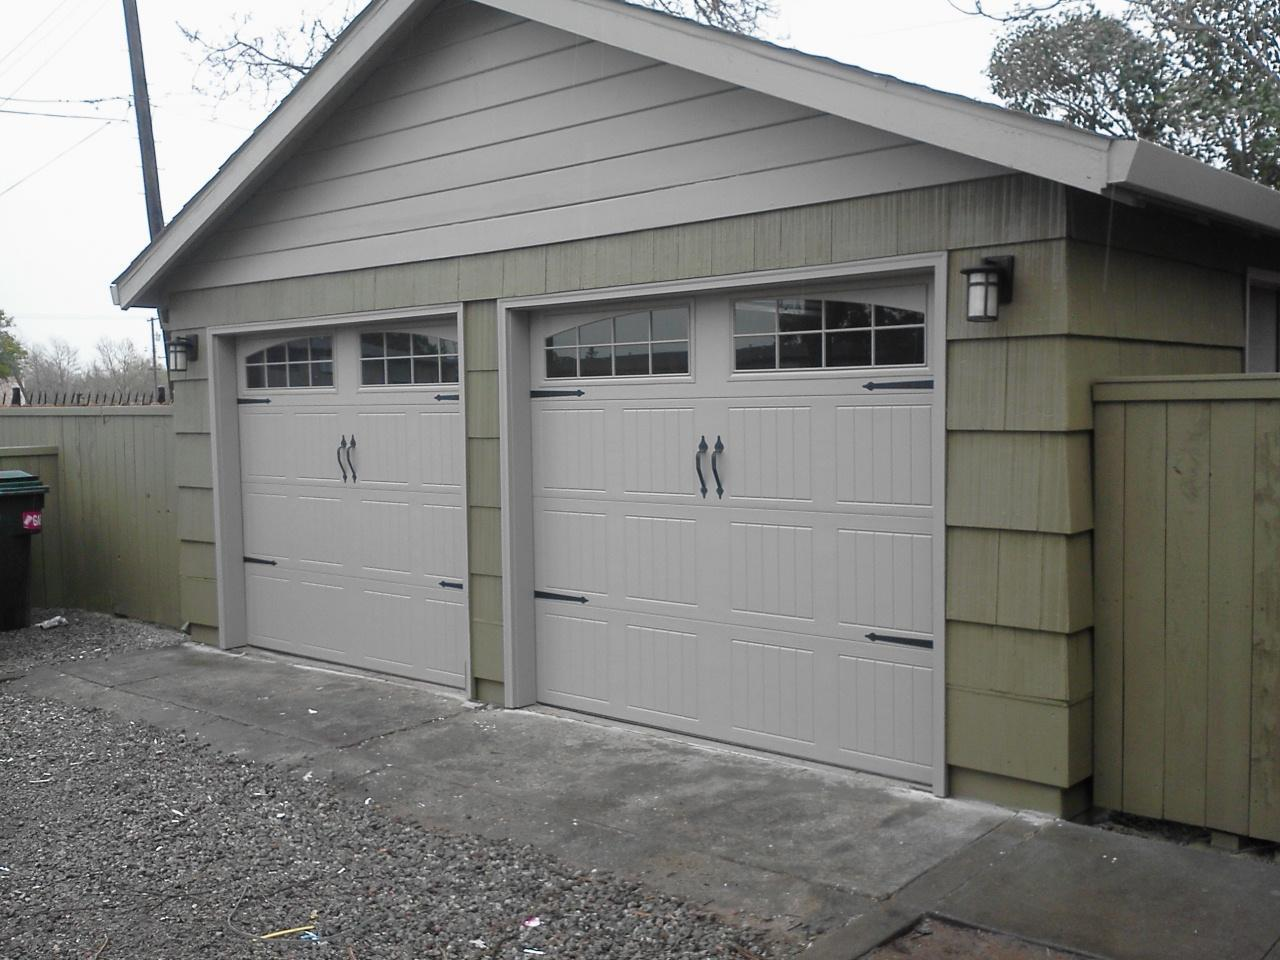 Advance Garage Door Service. Print. Share. (Home Business) 6604 Blue Poppy  Dr Elk Grove, CA 95757